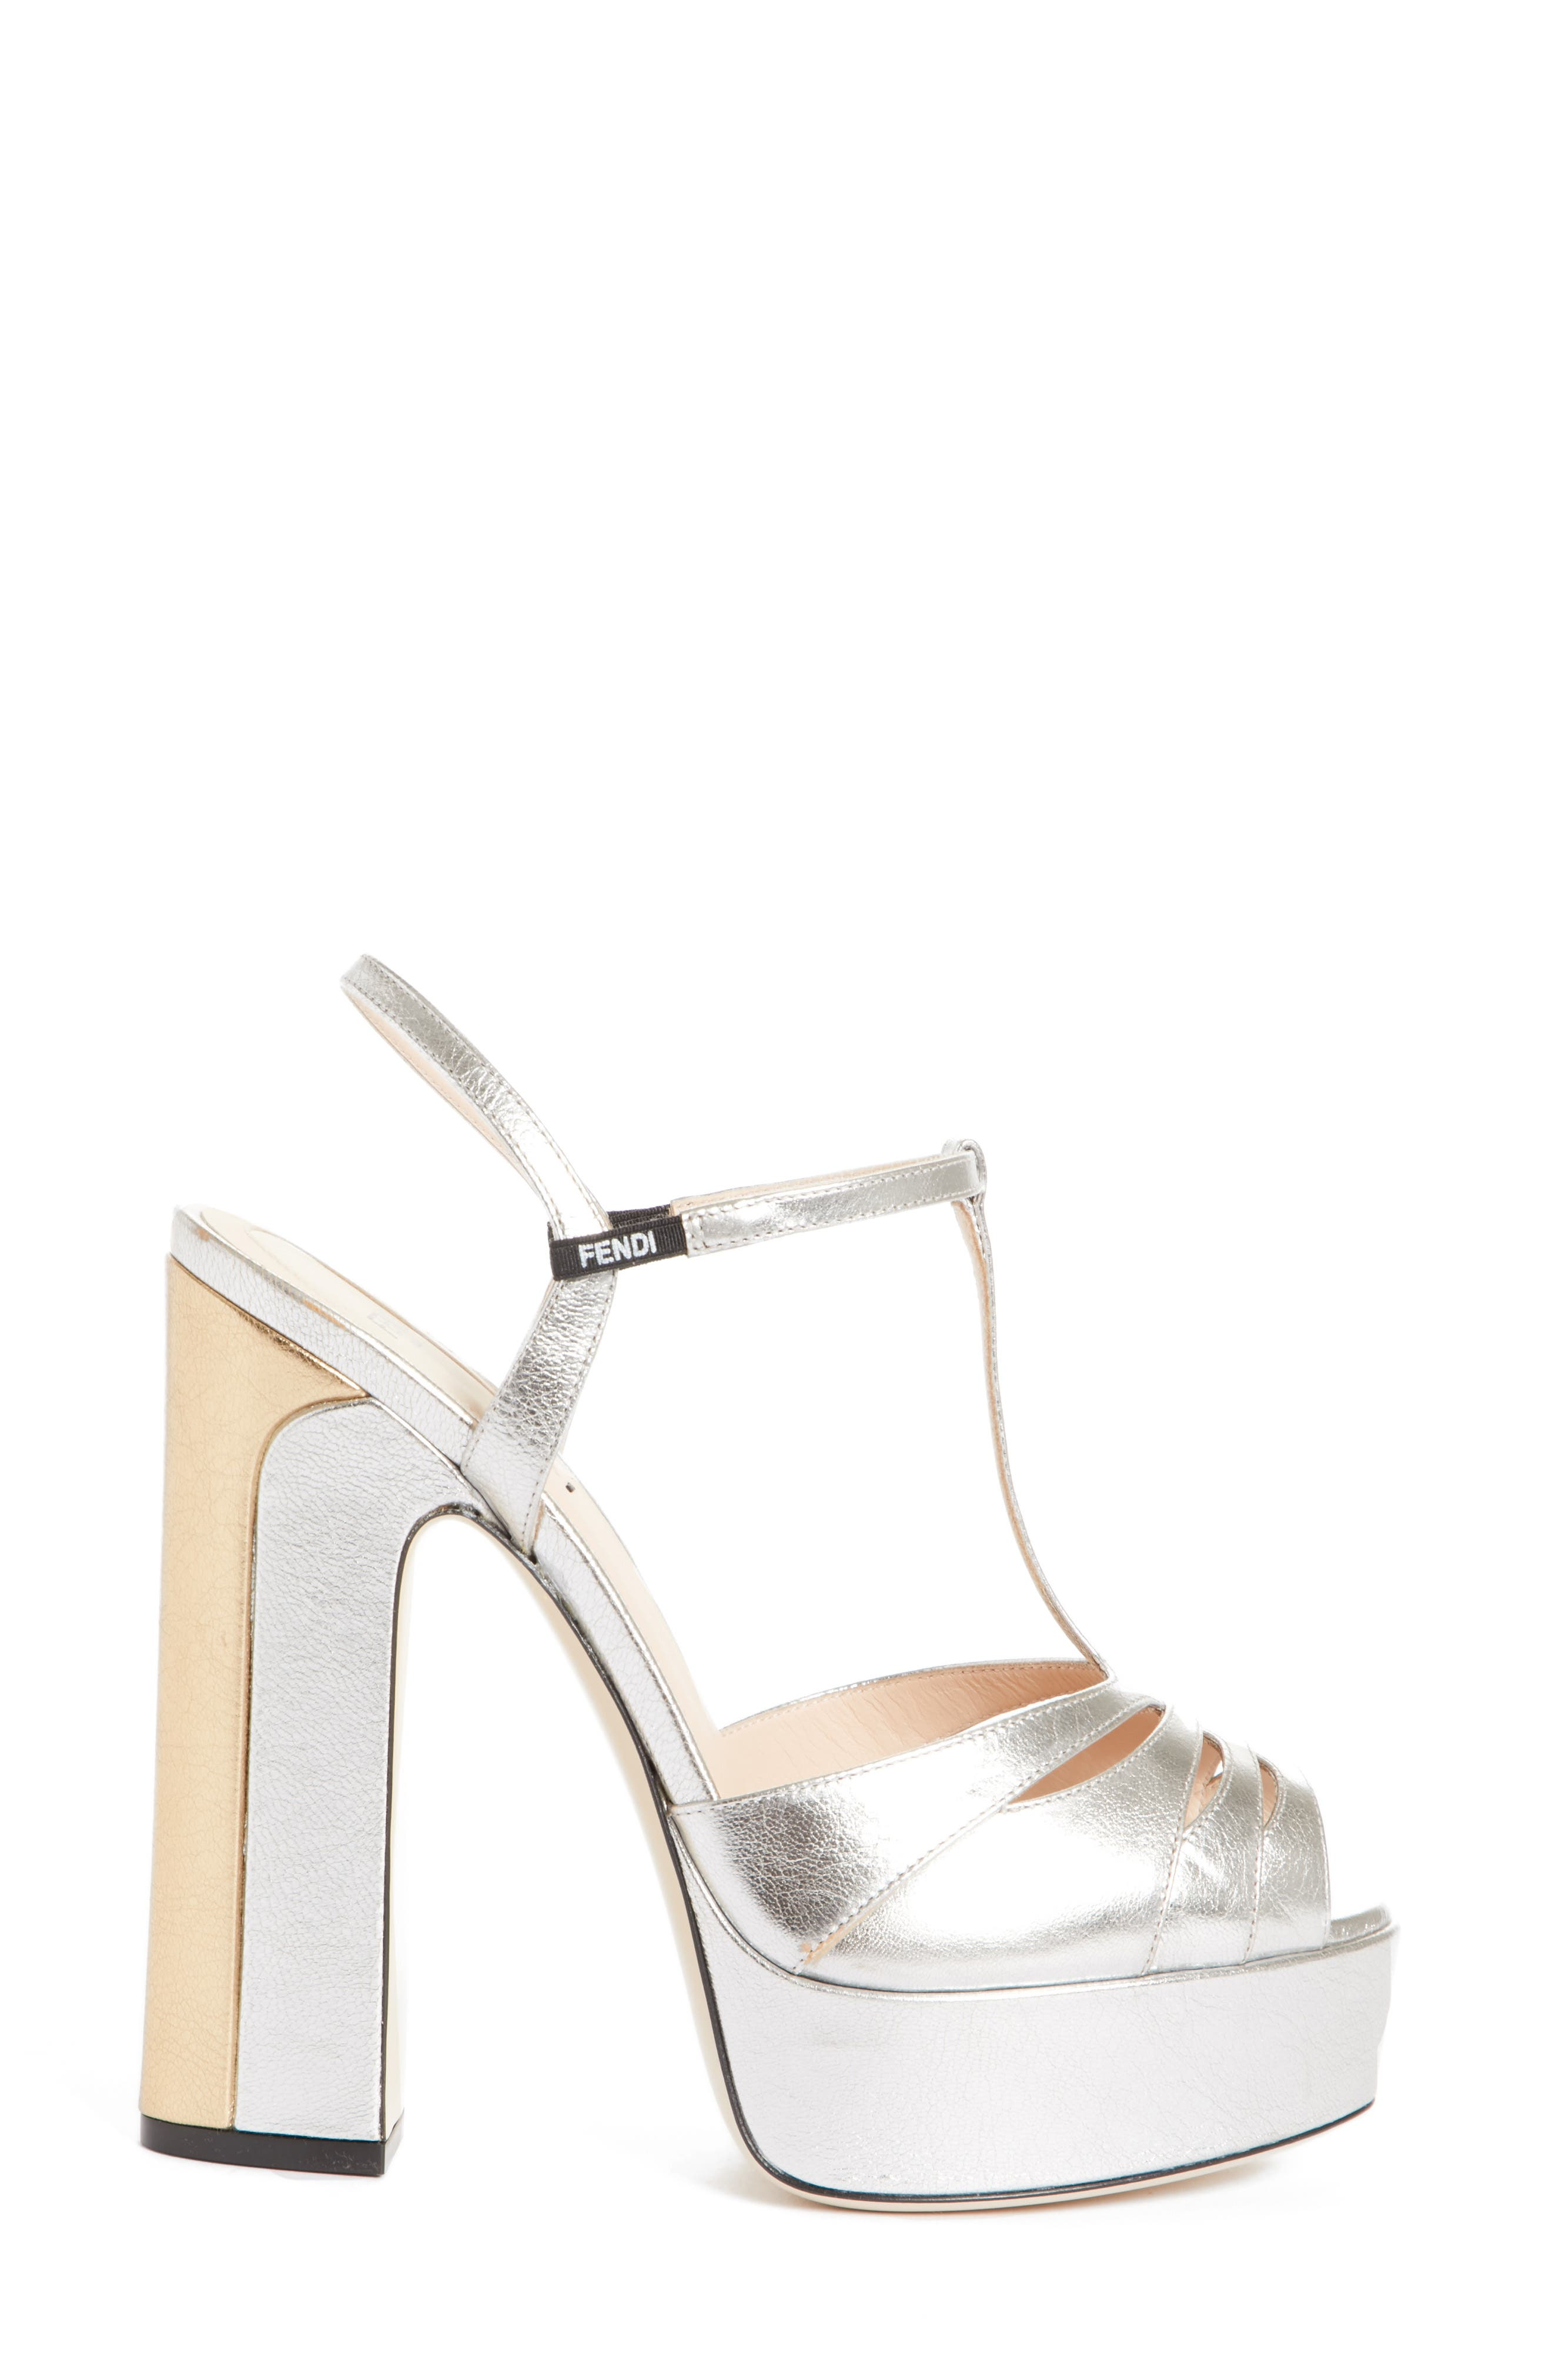 Alternate Image 3  - Fendi Duo Platform Sandal (Women)